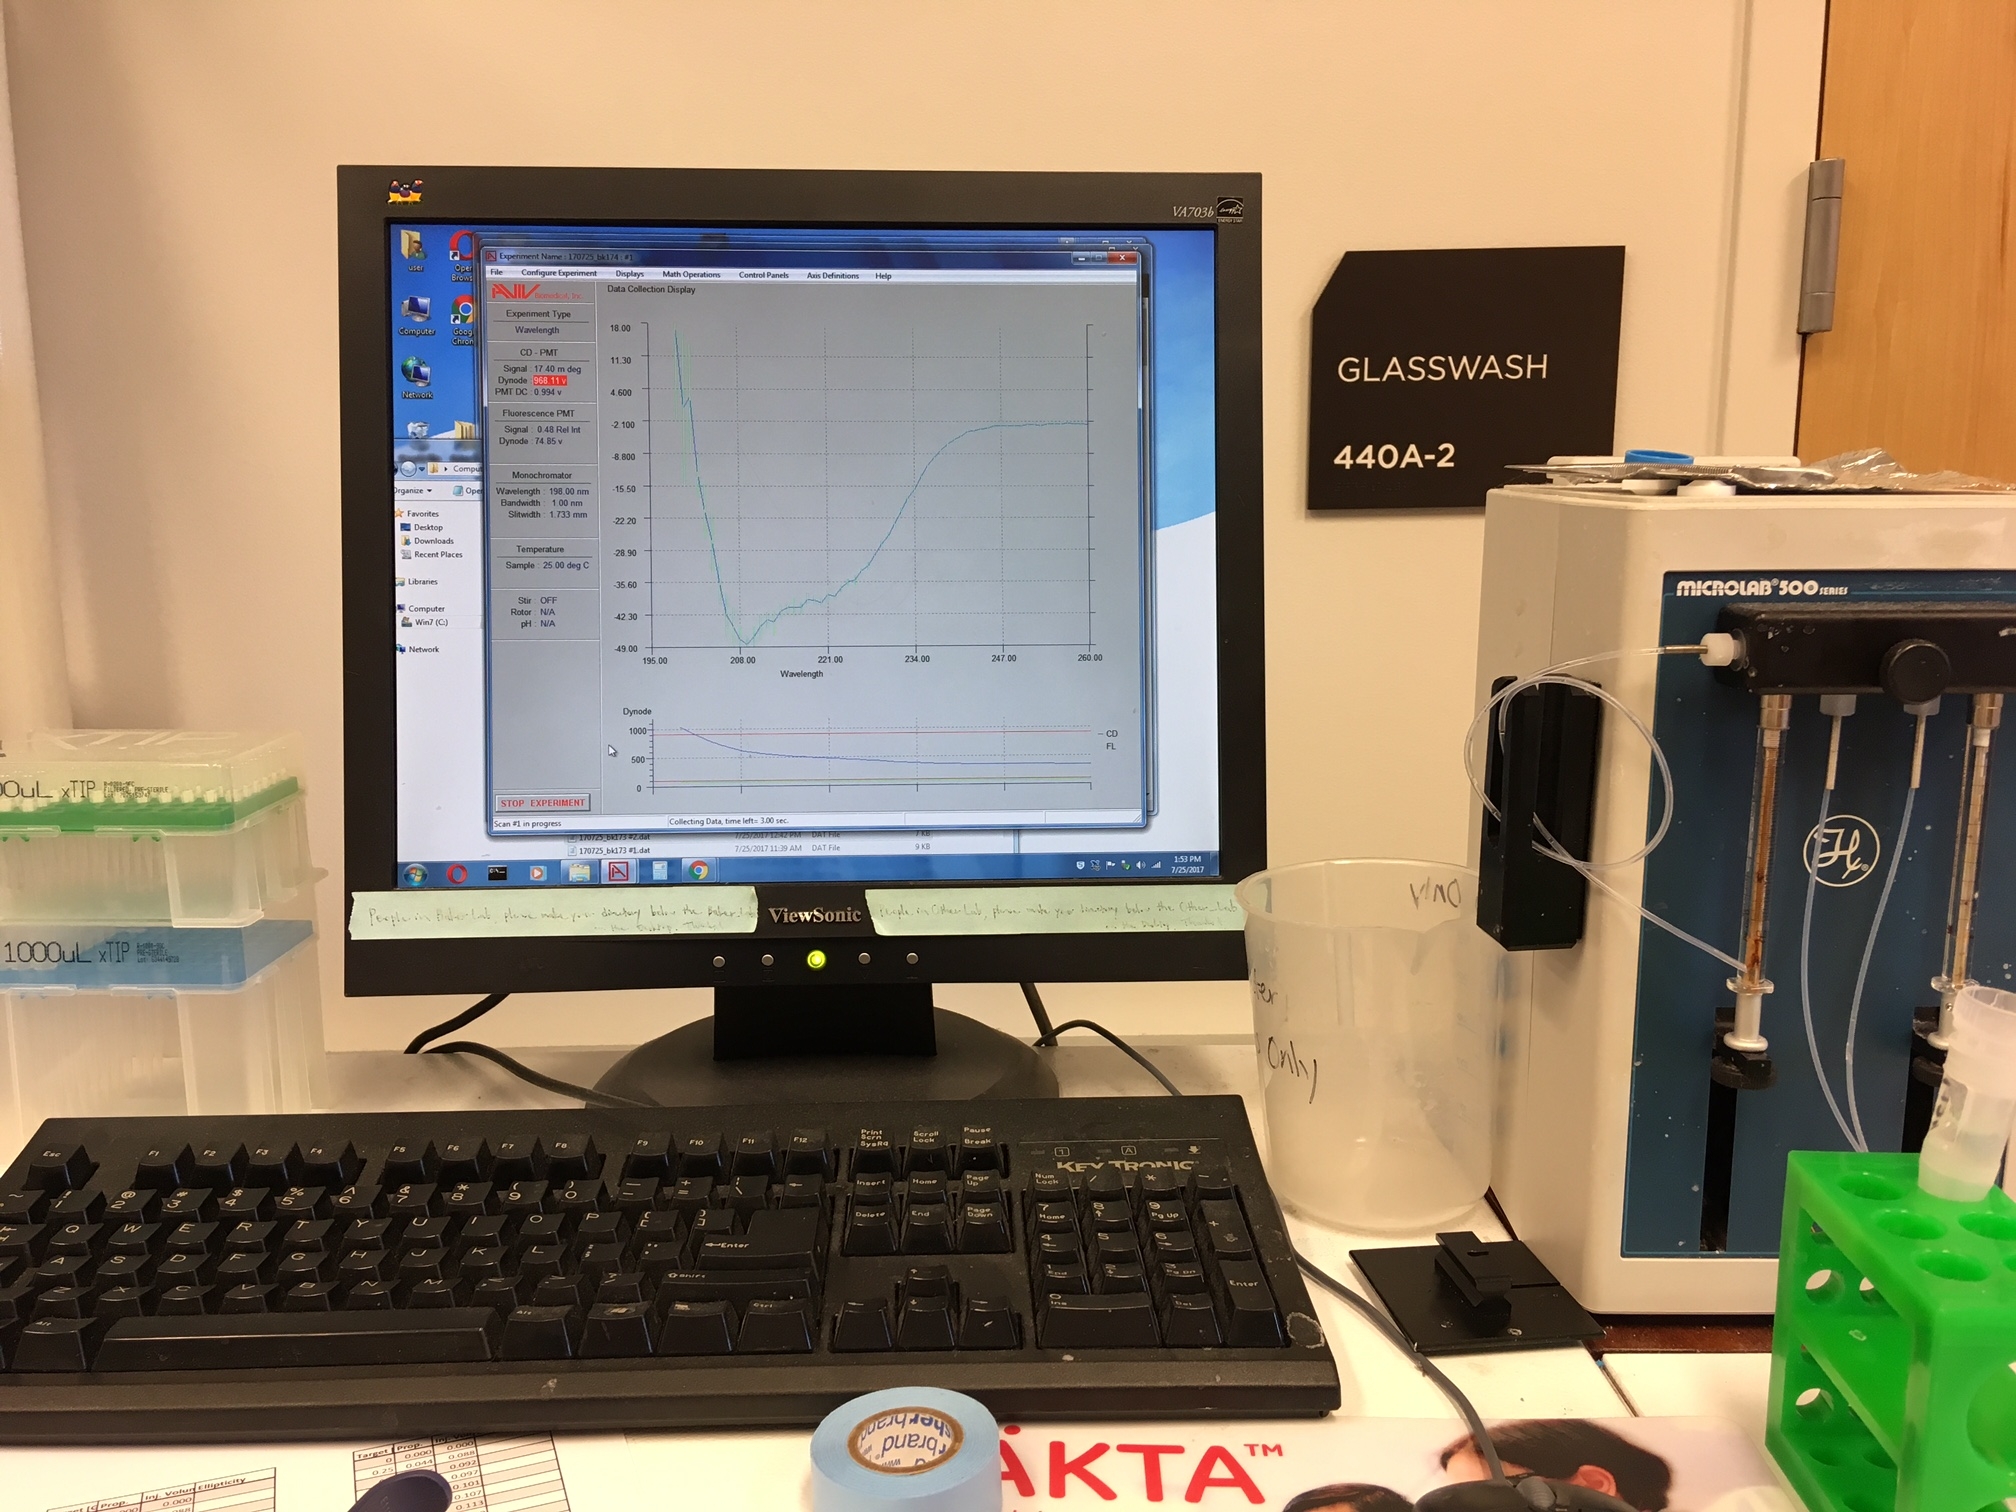 Desktop computer sitting on lab counter, desktop displays graph